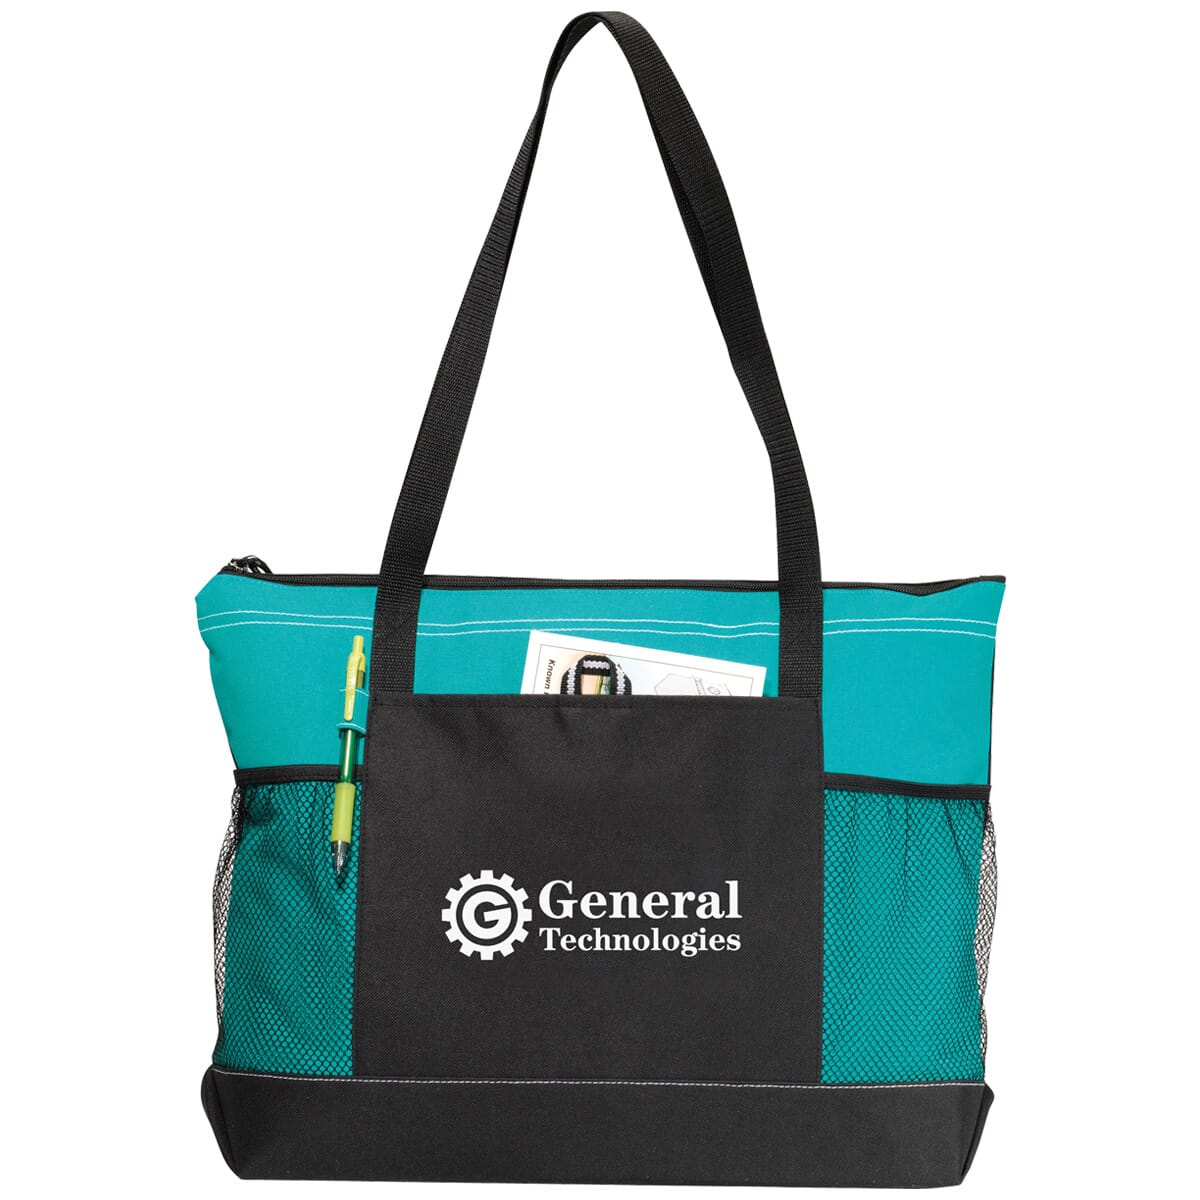 Turquoise and black tote bag with mesh pockets